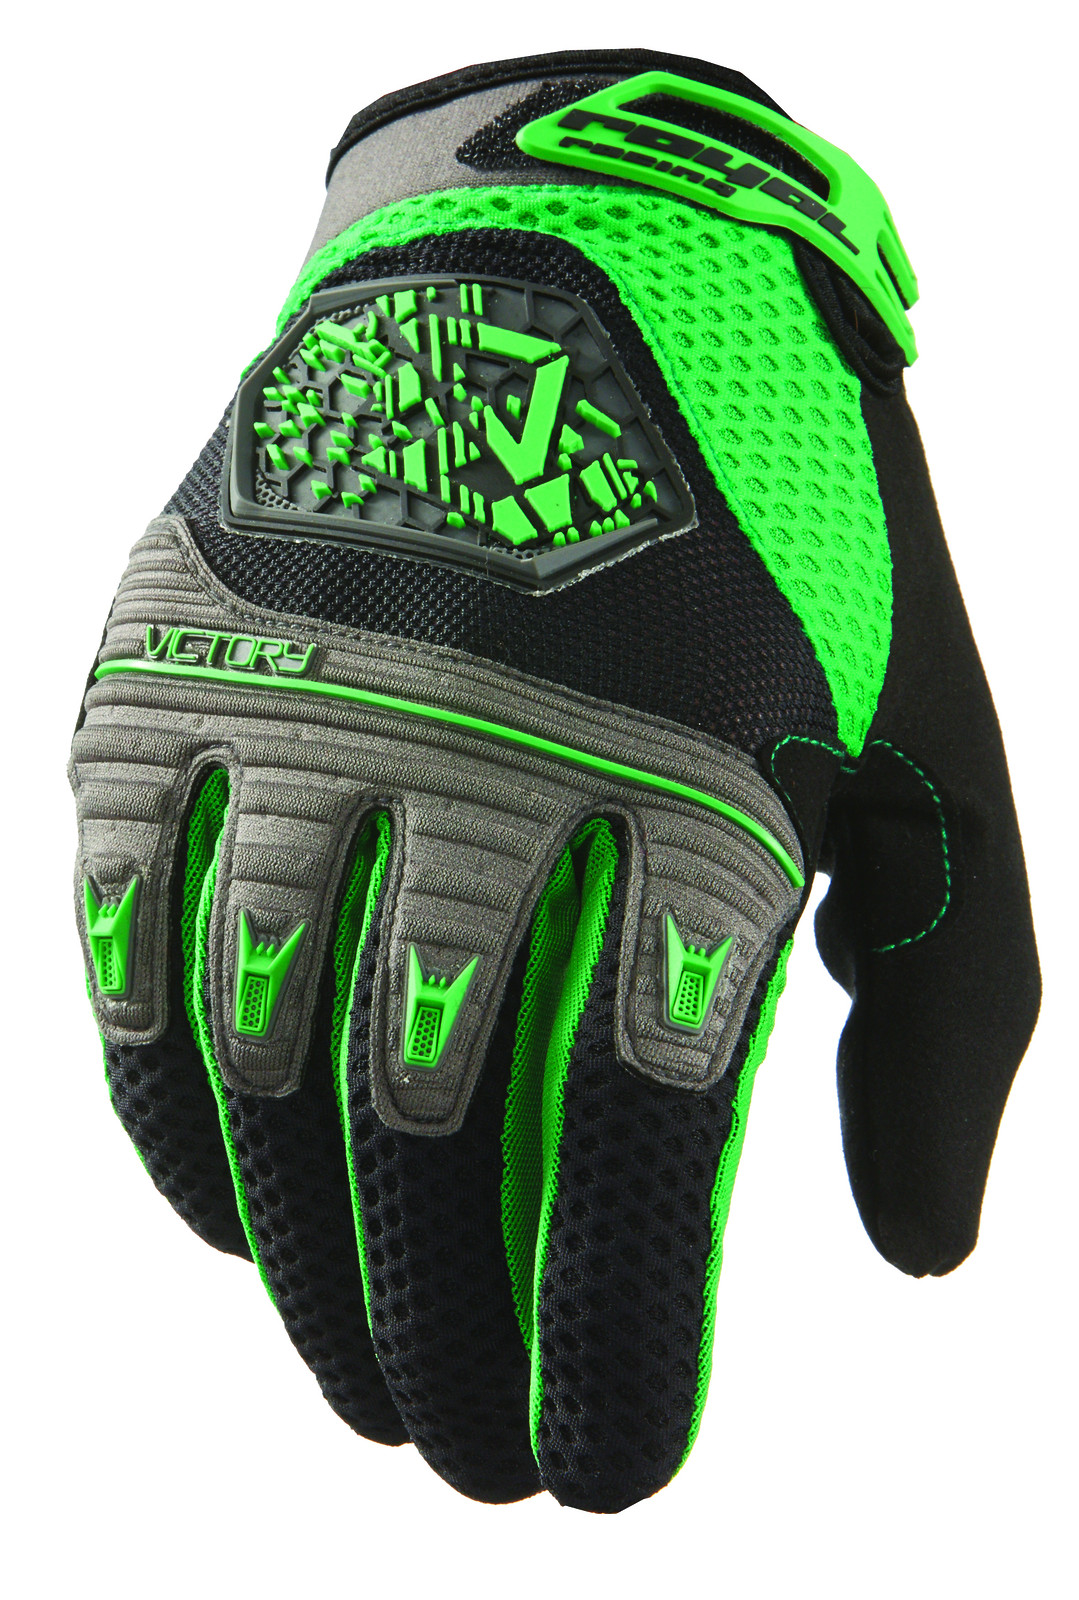 victory black green